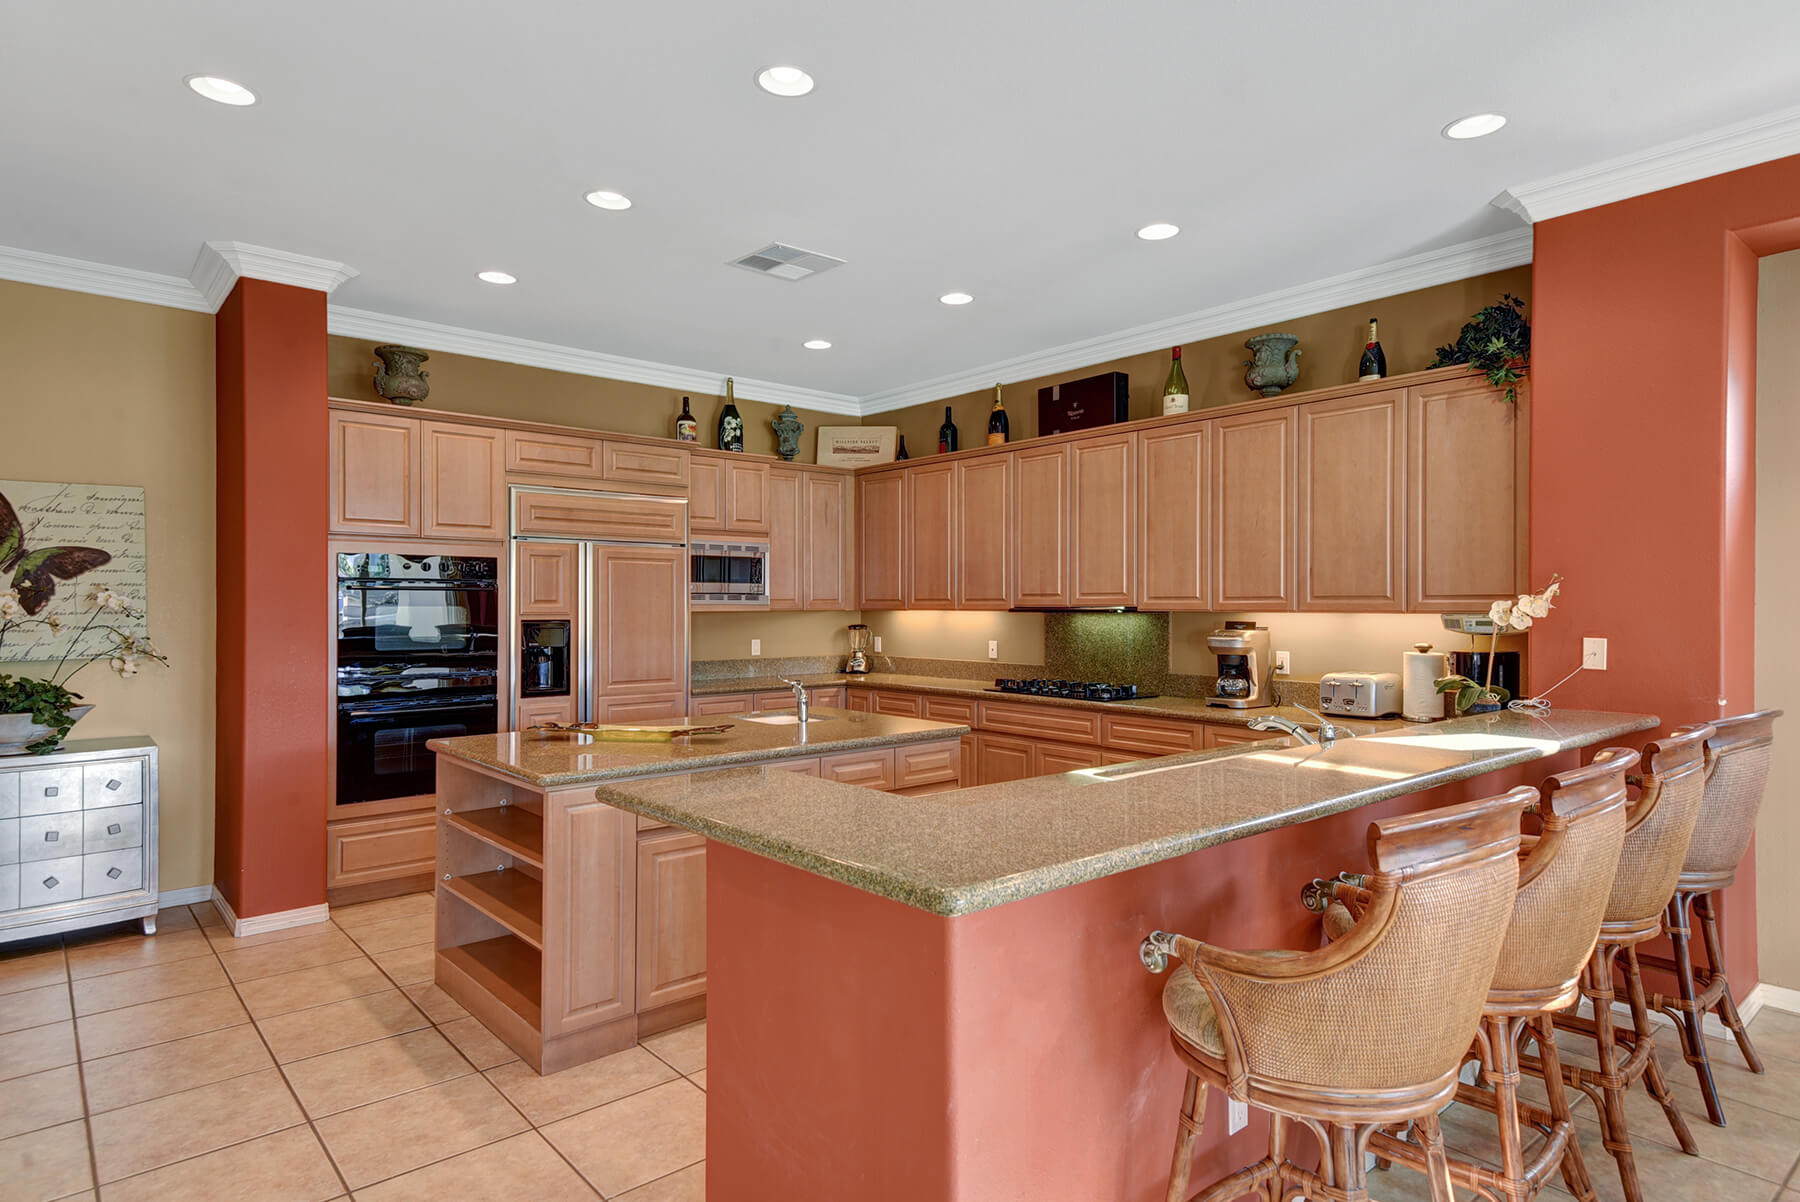 B97A7F7C-155D-0010-07A67A986B285B6B-KITCHEN OVER BREAKFAST BAR MLS.jpg